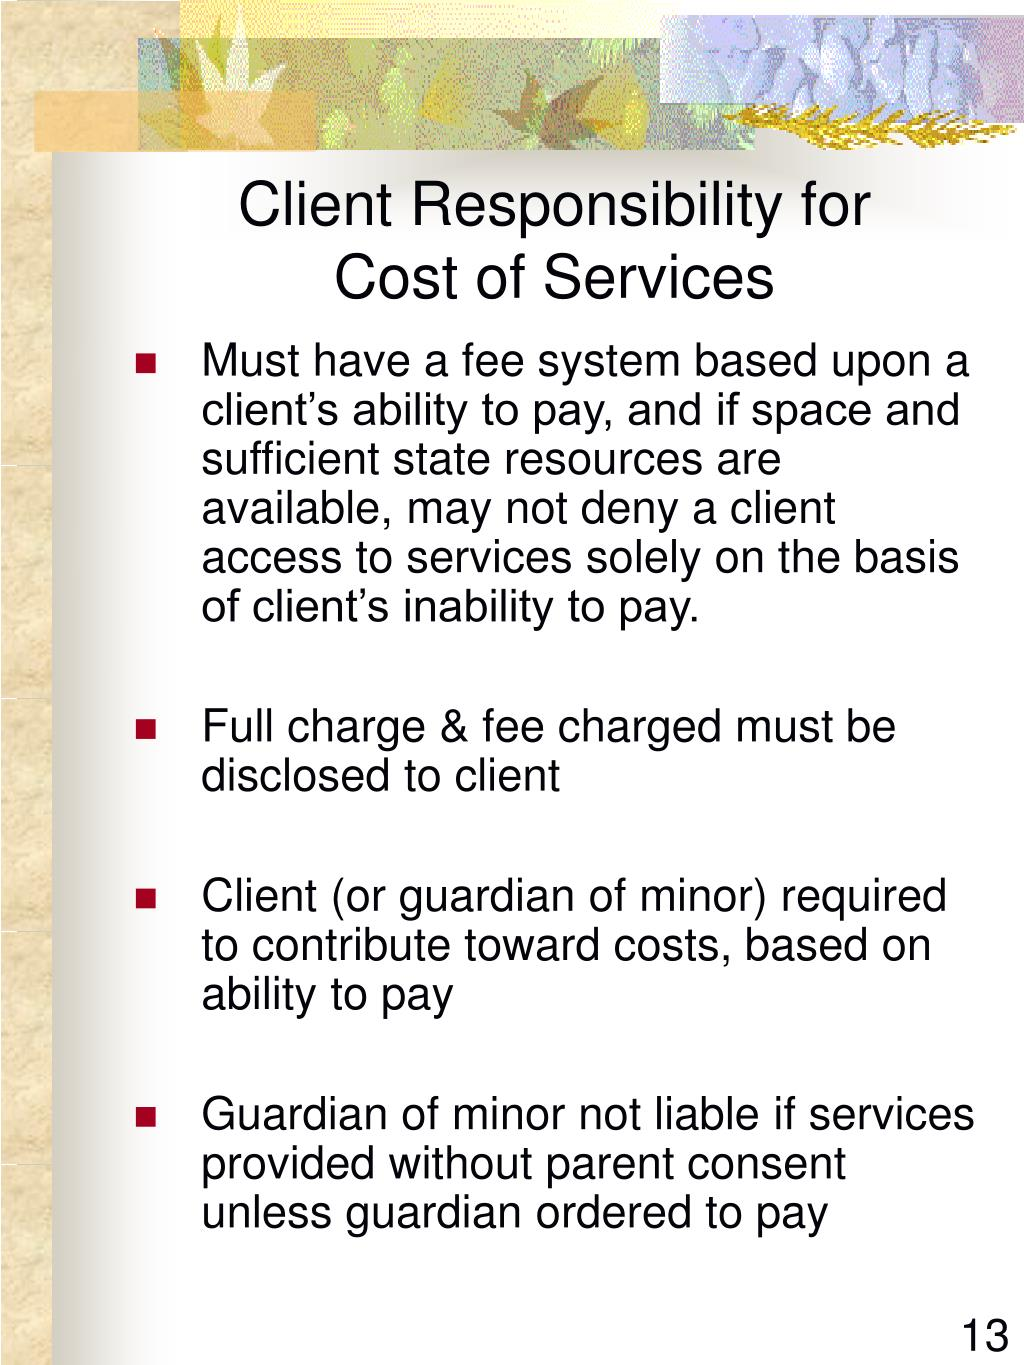 Client Responsibility for